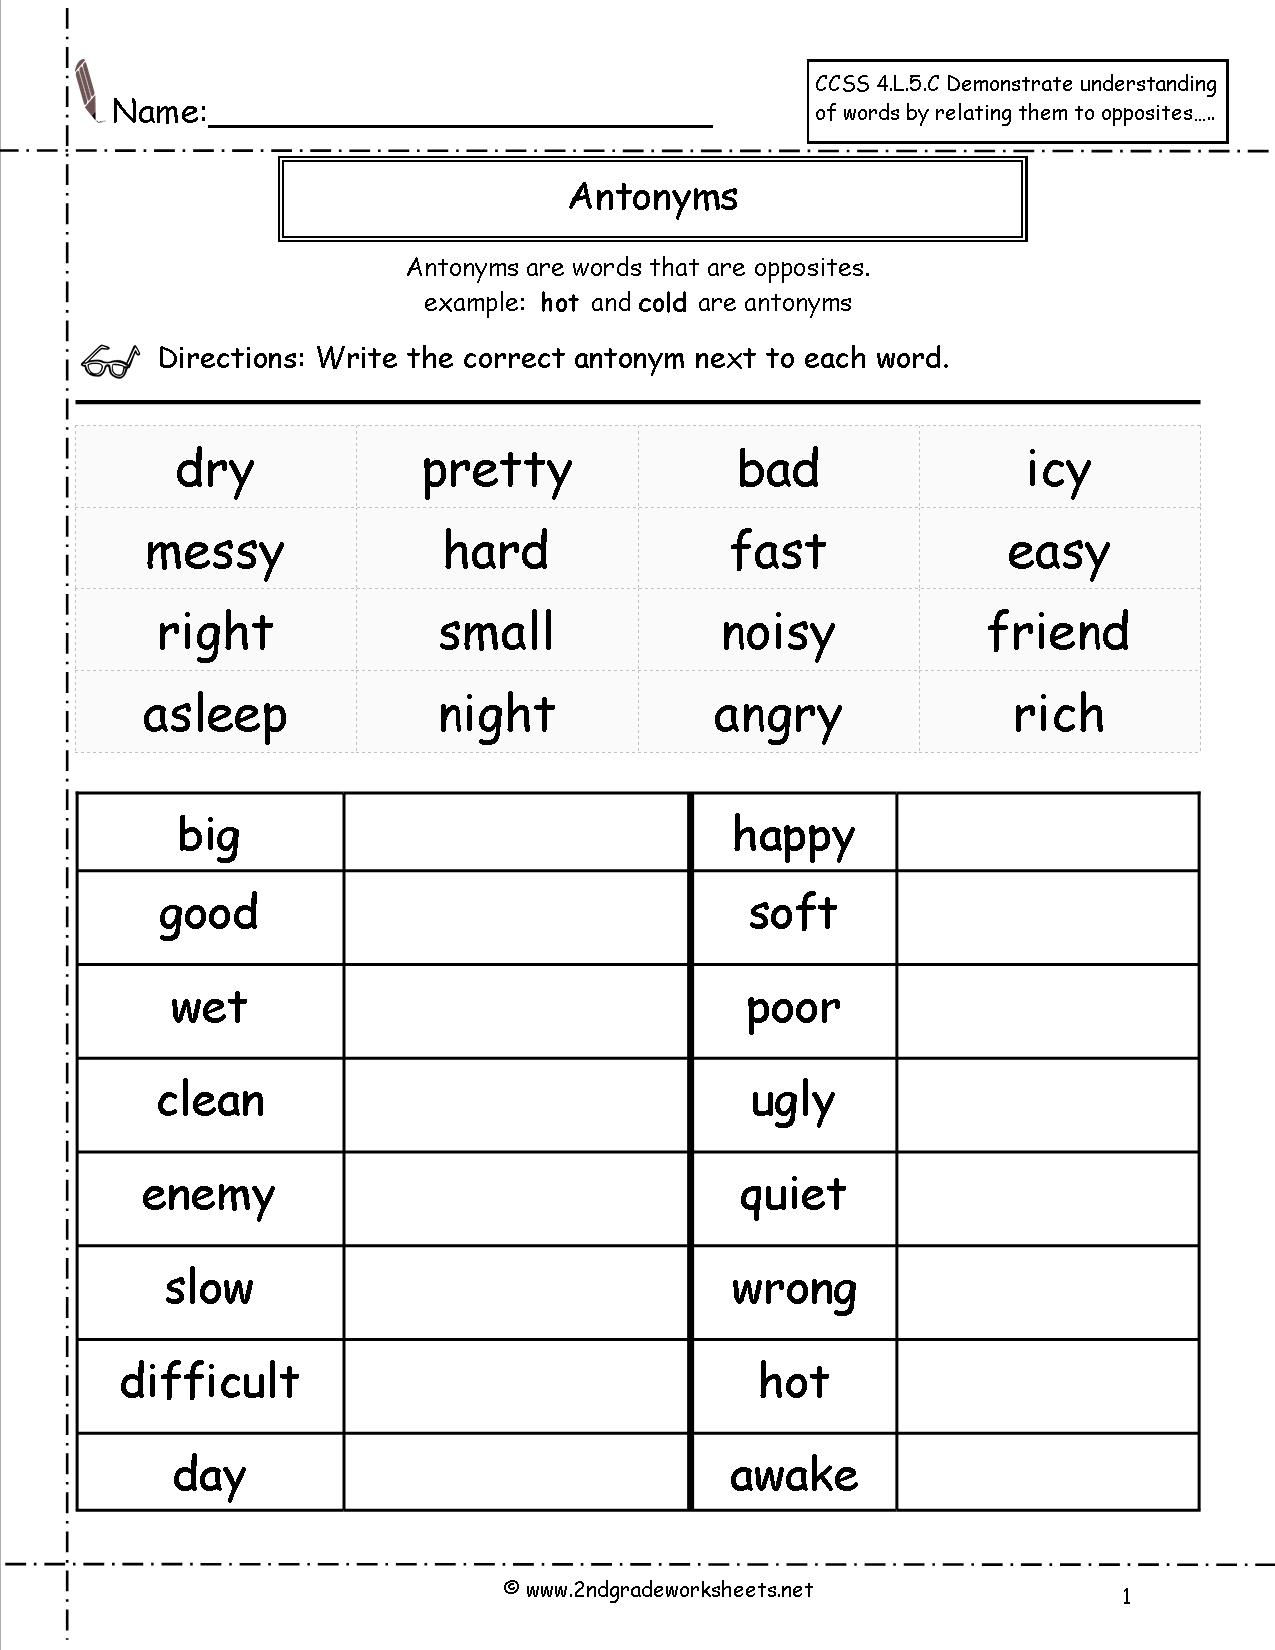 Free Language/grammar Worksheets And Printouts | 2Nd Grade Grammar Printable Worksheets